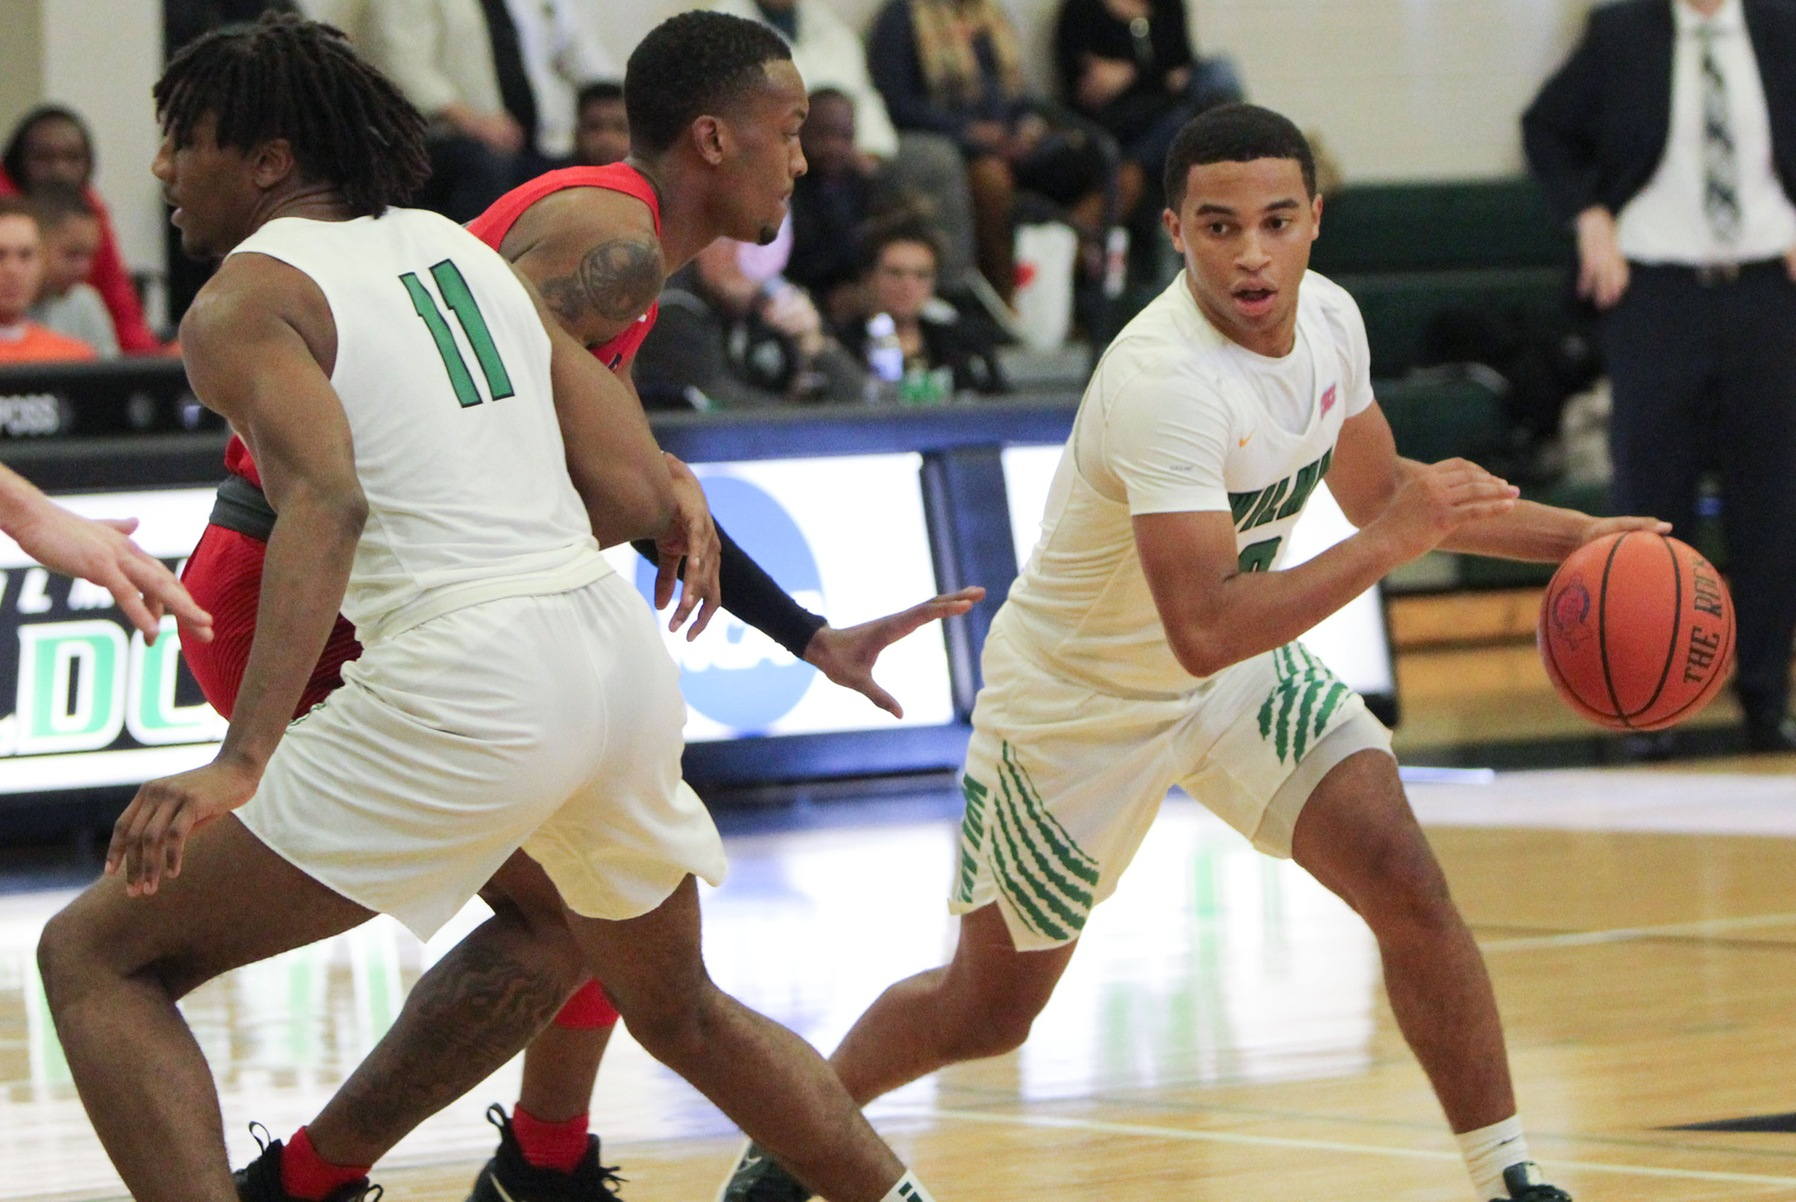 File photo of Tyler Norwood who scored 17 points off the bench at UDC. Copyright 2019; Wilmington University. All rights reserved. Photo by Samantha Kelley. November 16, 2019 vs. Shippensburg.